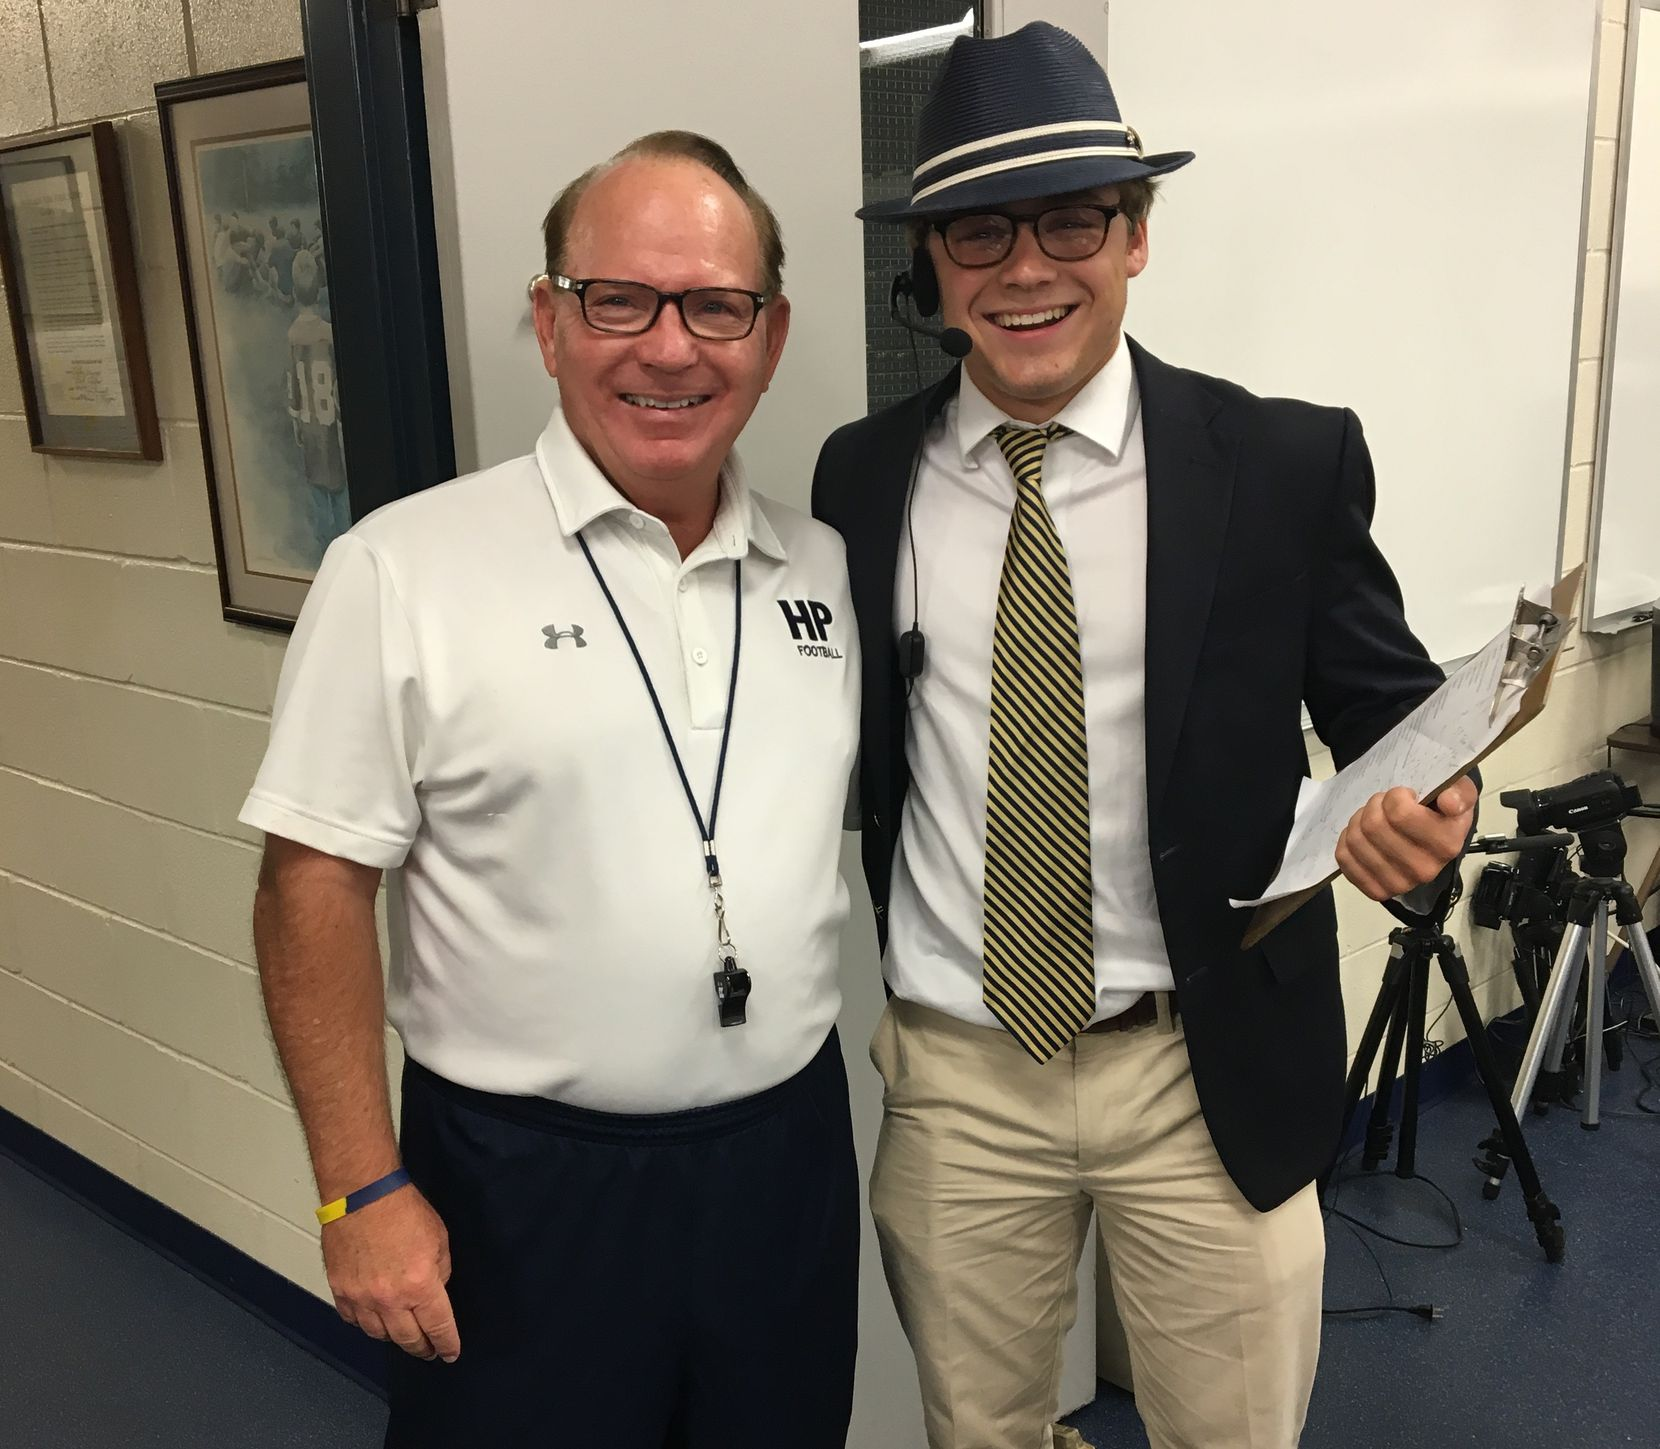 Randy Allen's grandson, Connor (right), dressed up as his grandfather for an event at Highland Park high school.